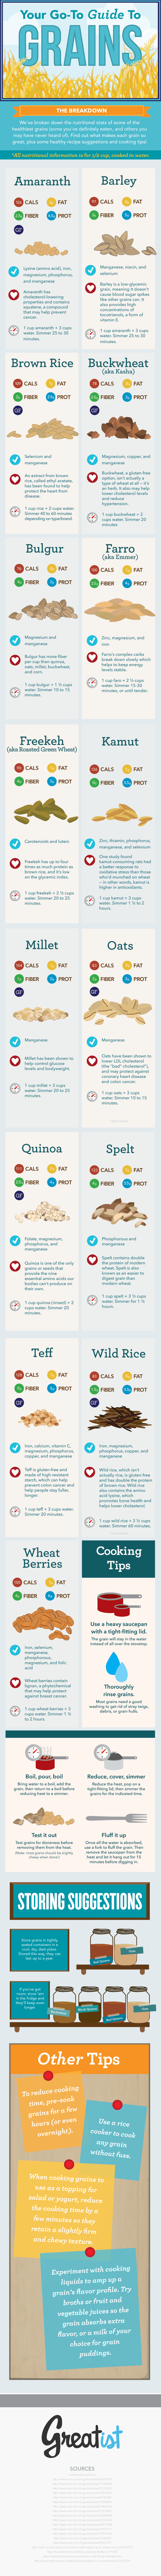 Your Go-To Guide for Choosing Healthier Grains